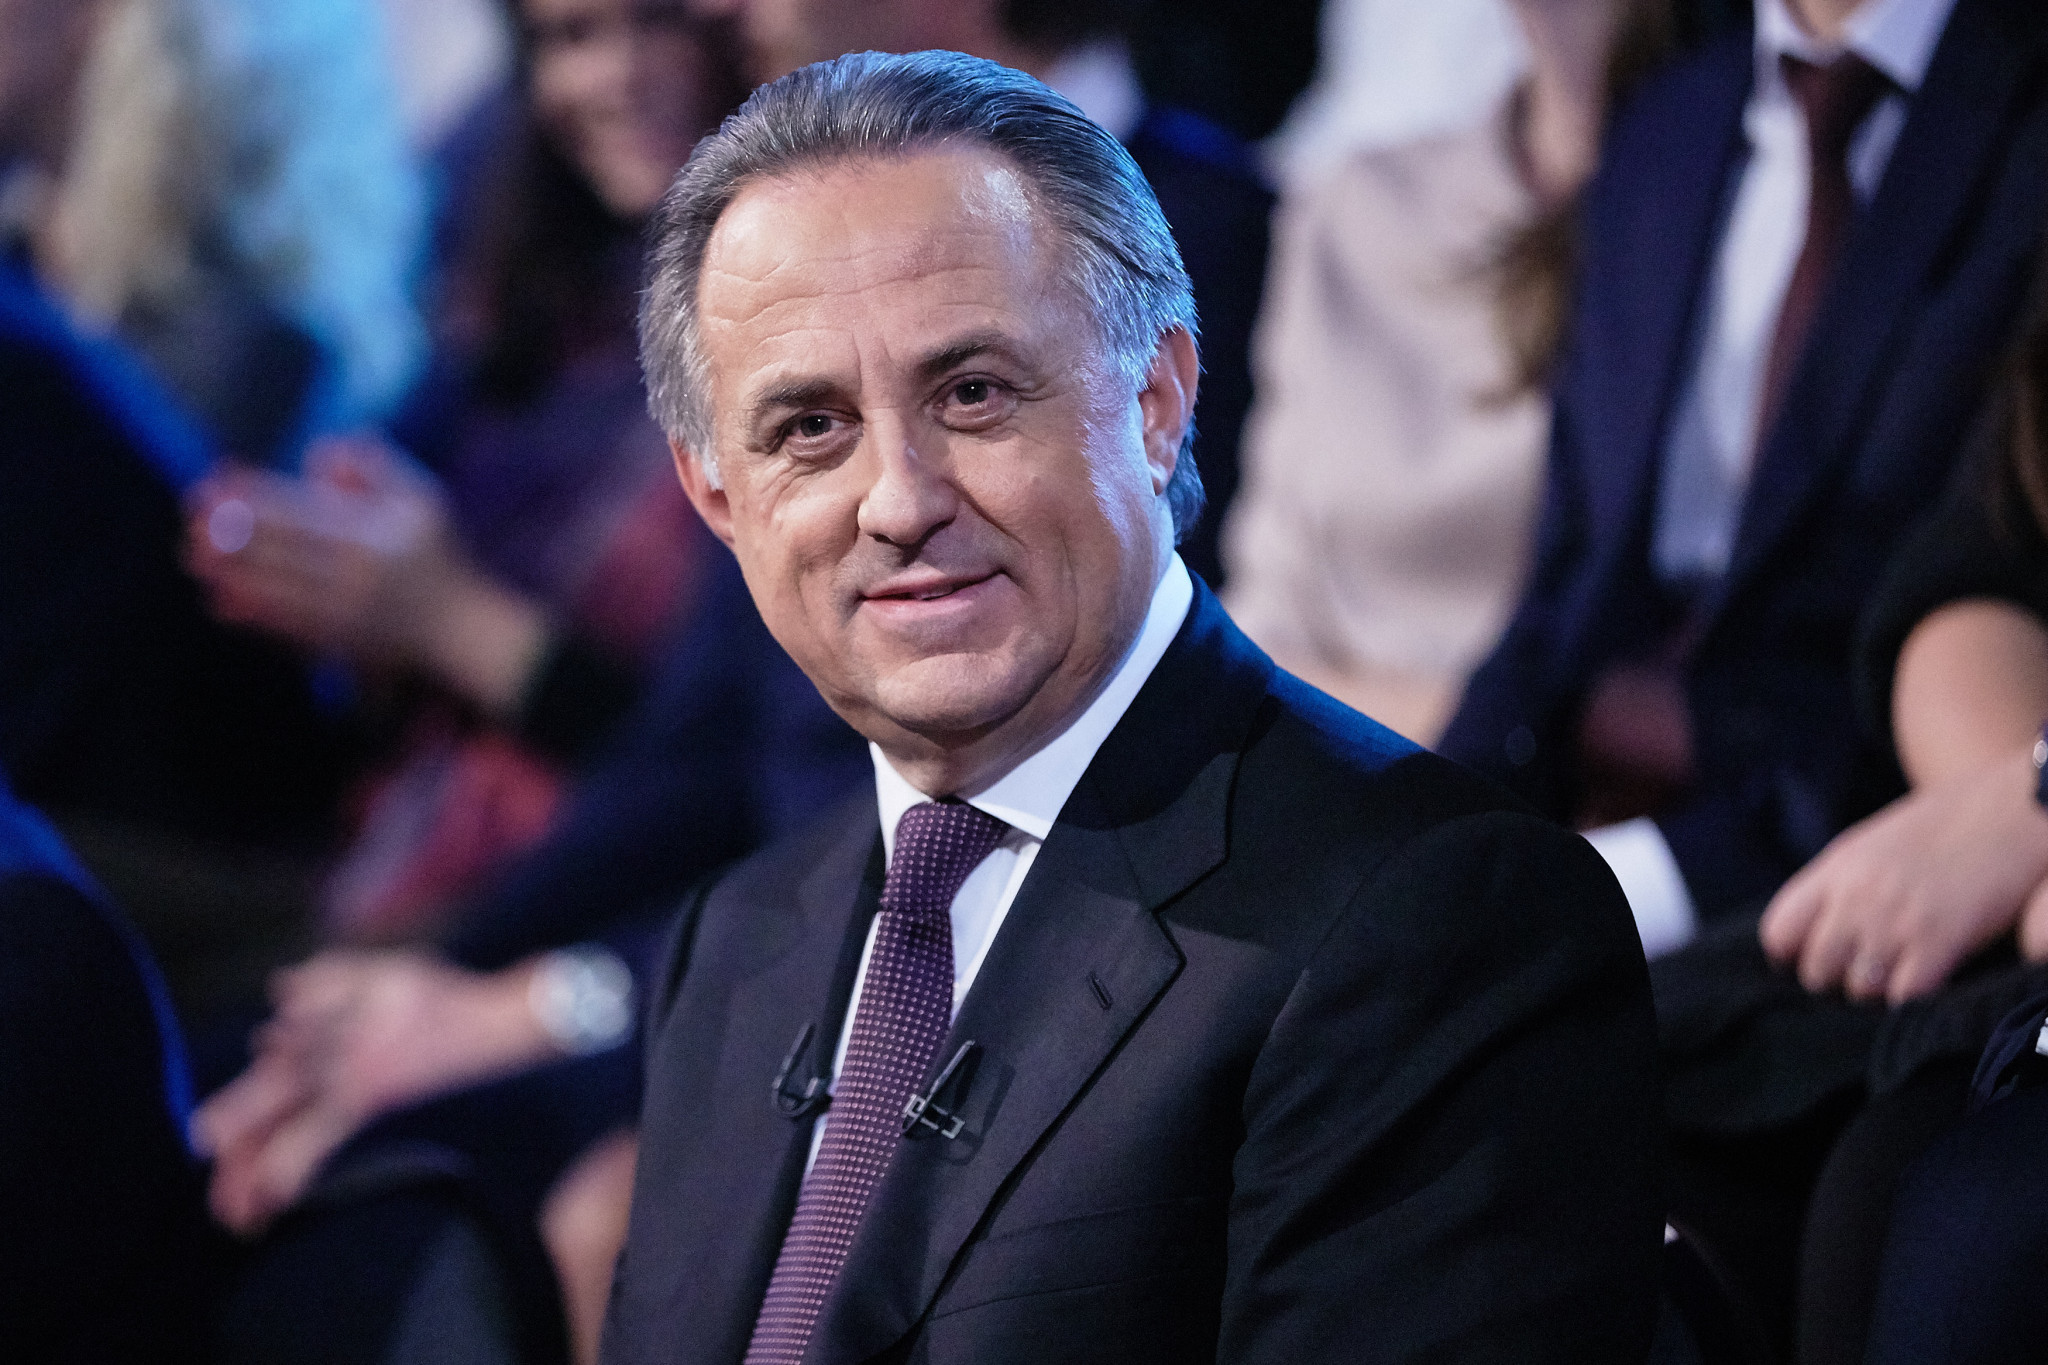 Whistleblower Grigory Rodchenkov has claimed Russia's former Sports Minister Vitaly Mutko was behind a scheme to cover-up drugs tests involving the country's athletes ©Getty Images